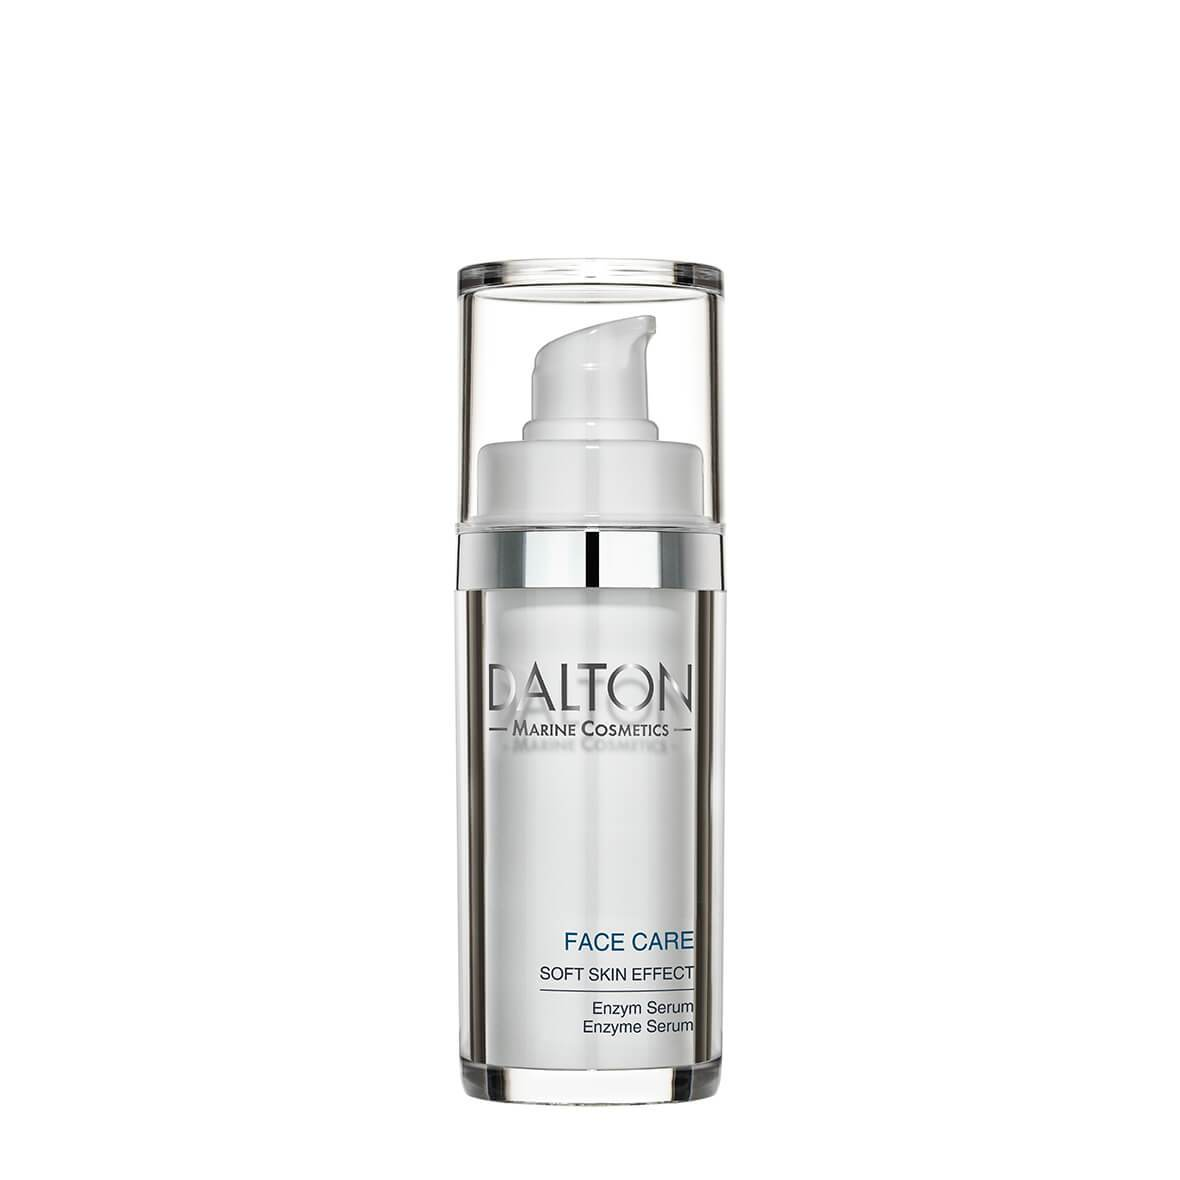 Ser, Face Care Enzyme Serum 30 ml., Dalton Marine Cosmetics, Era Cosmetics